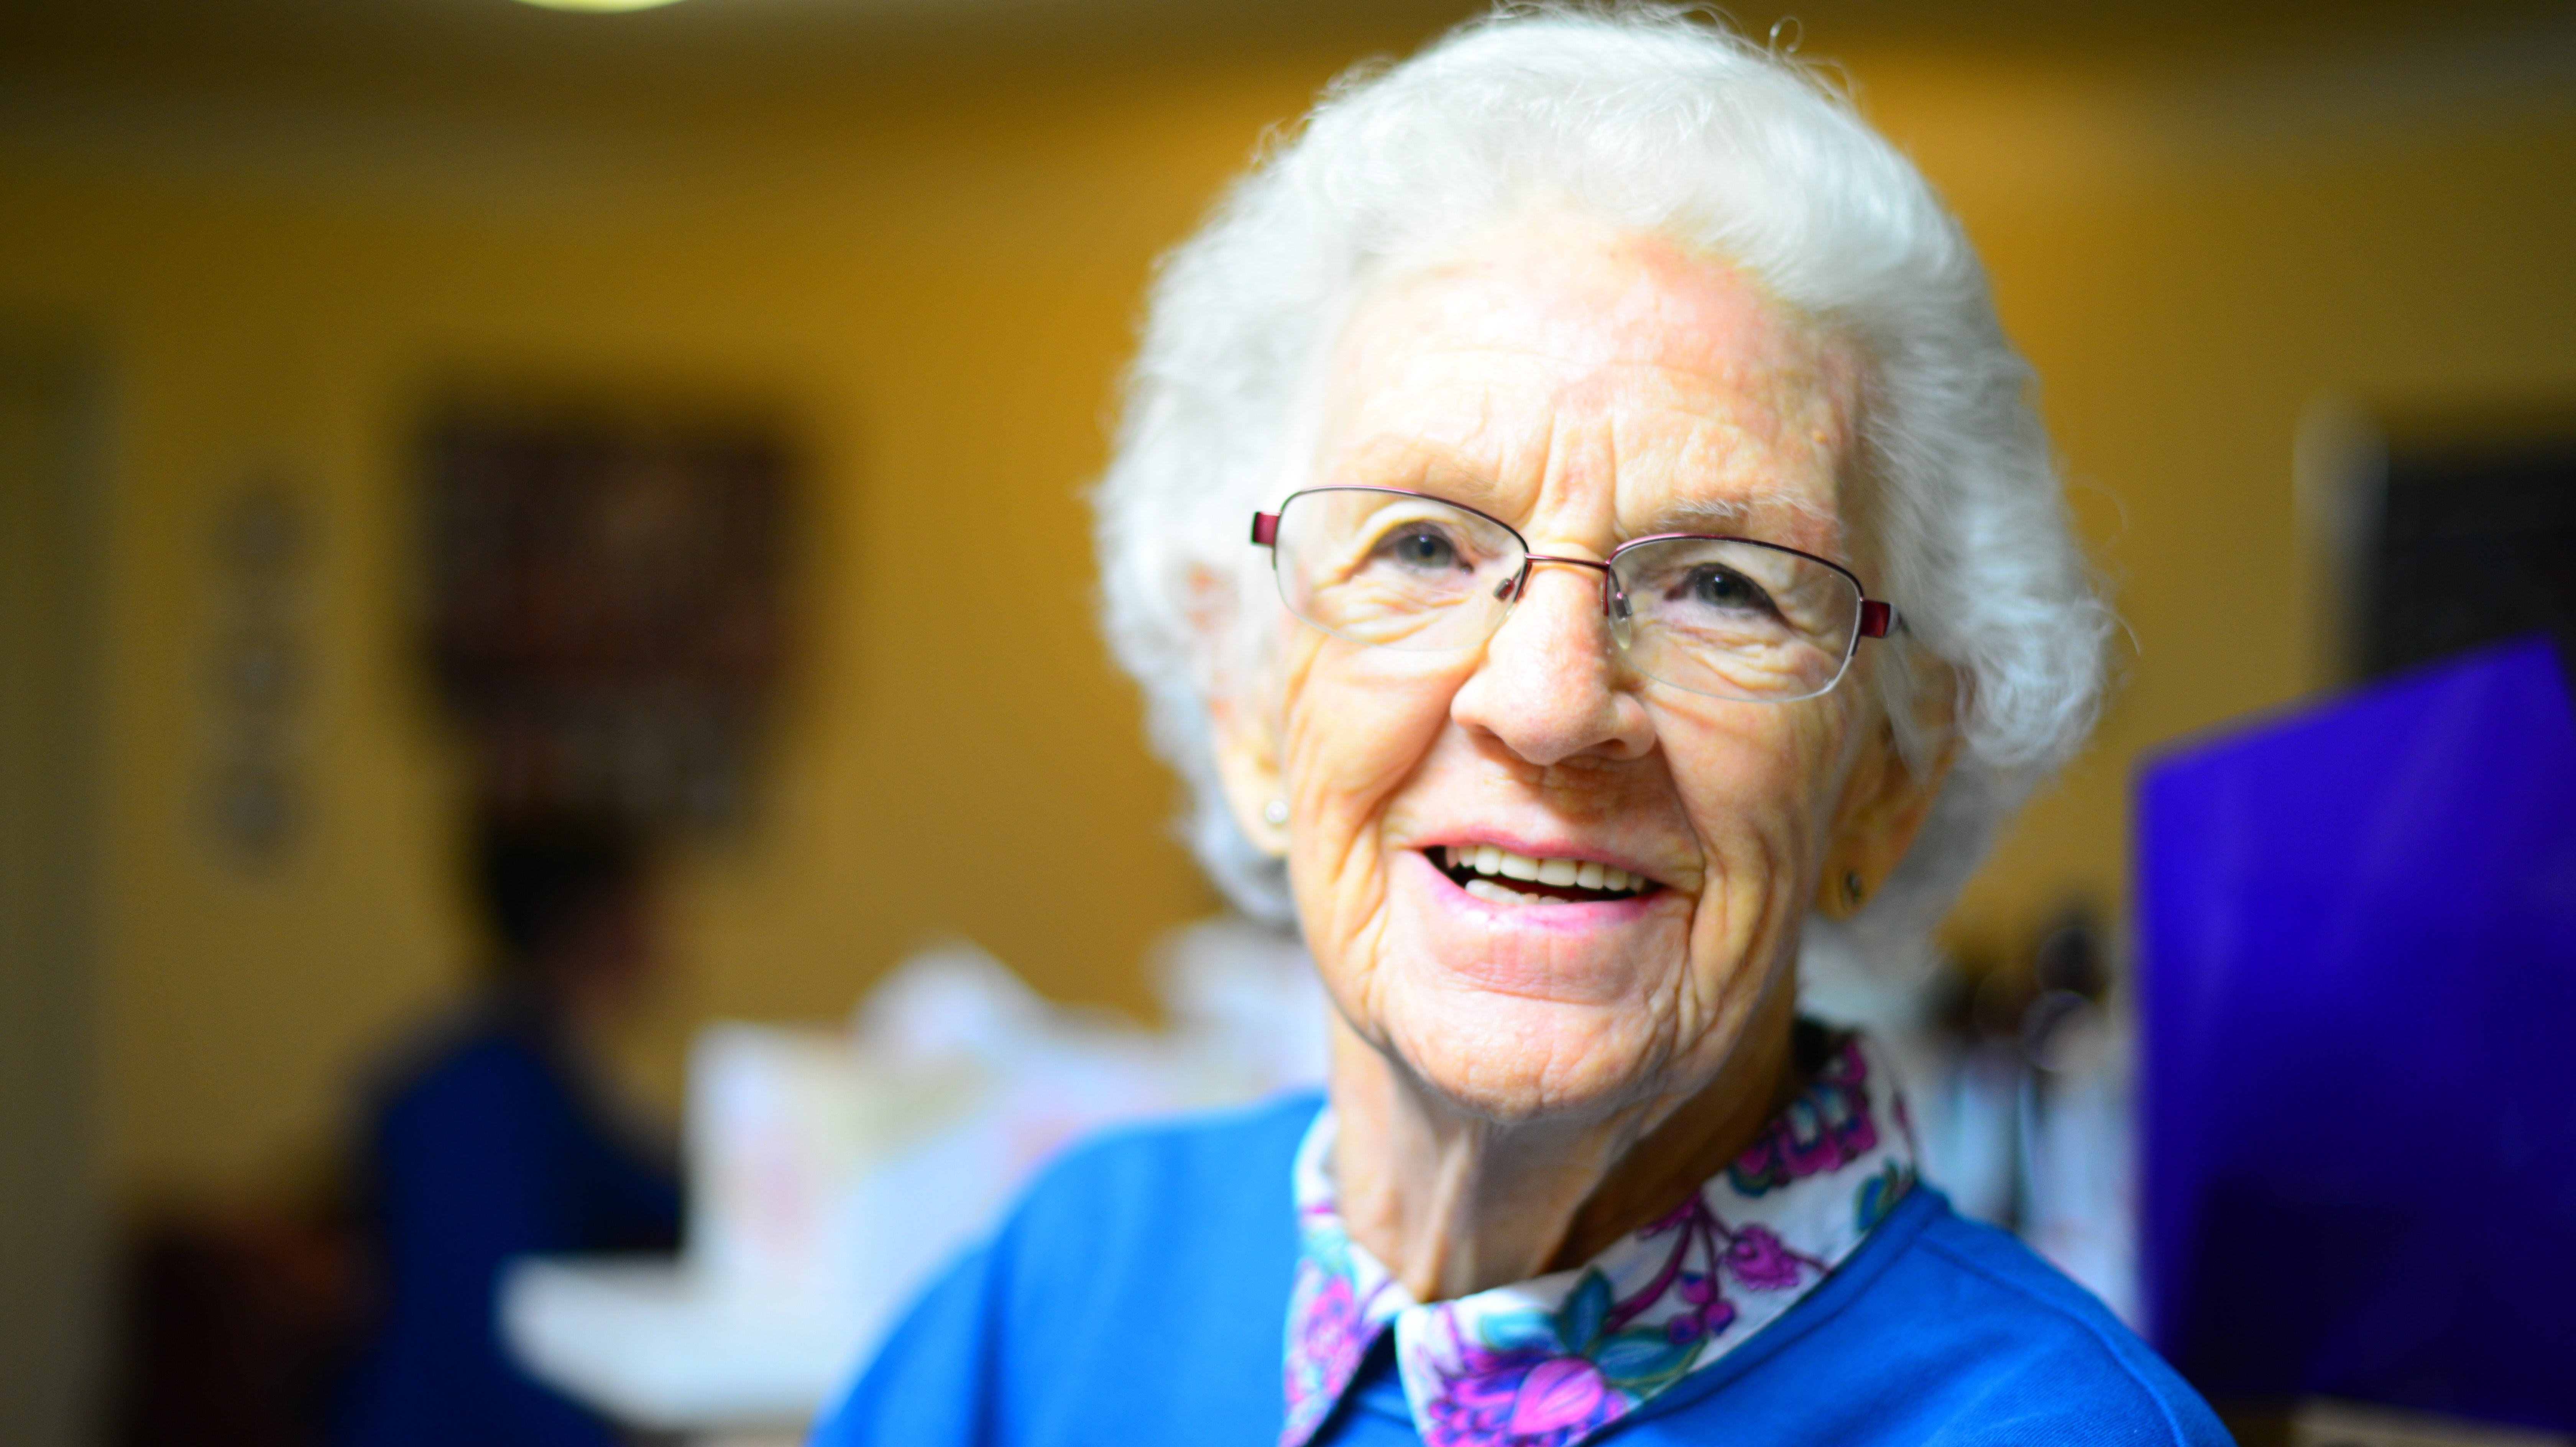 Charity campaign brings hope to LGBT elders isolated by coronavirus